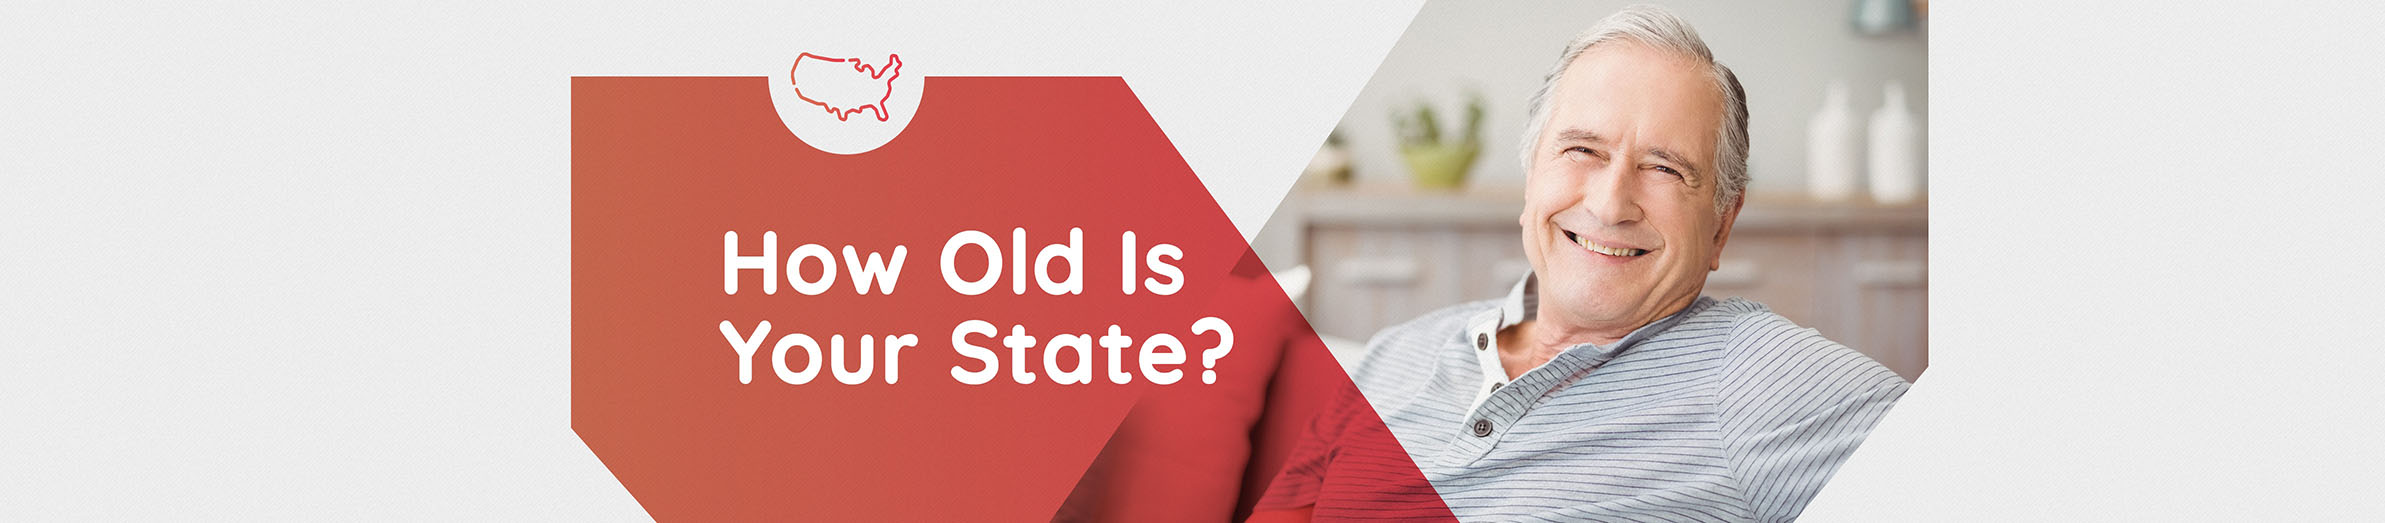 How Old Is Your State?